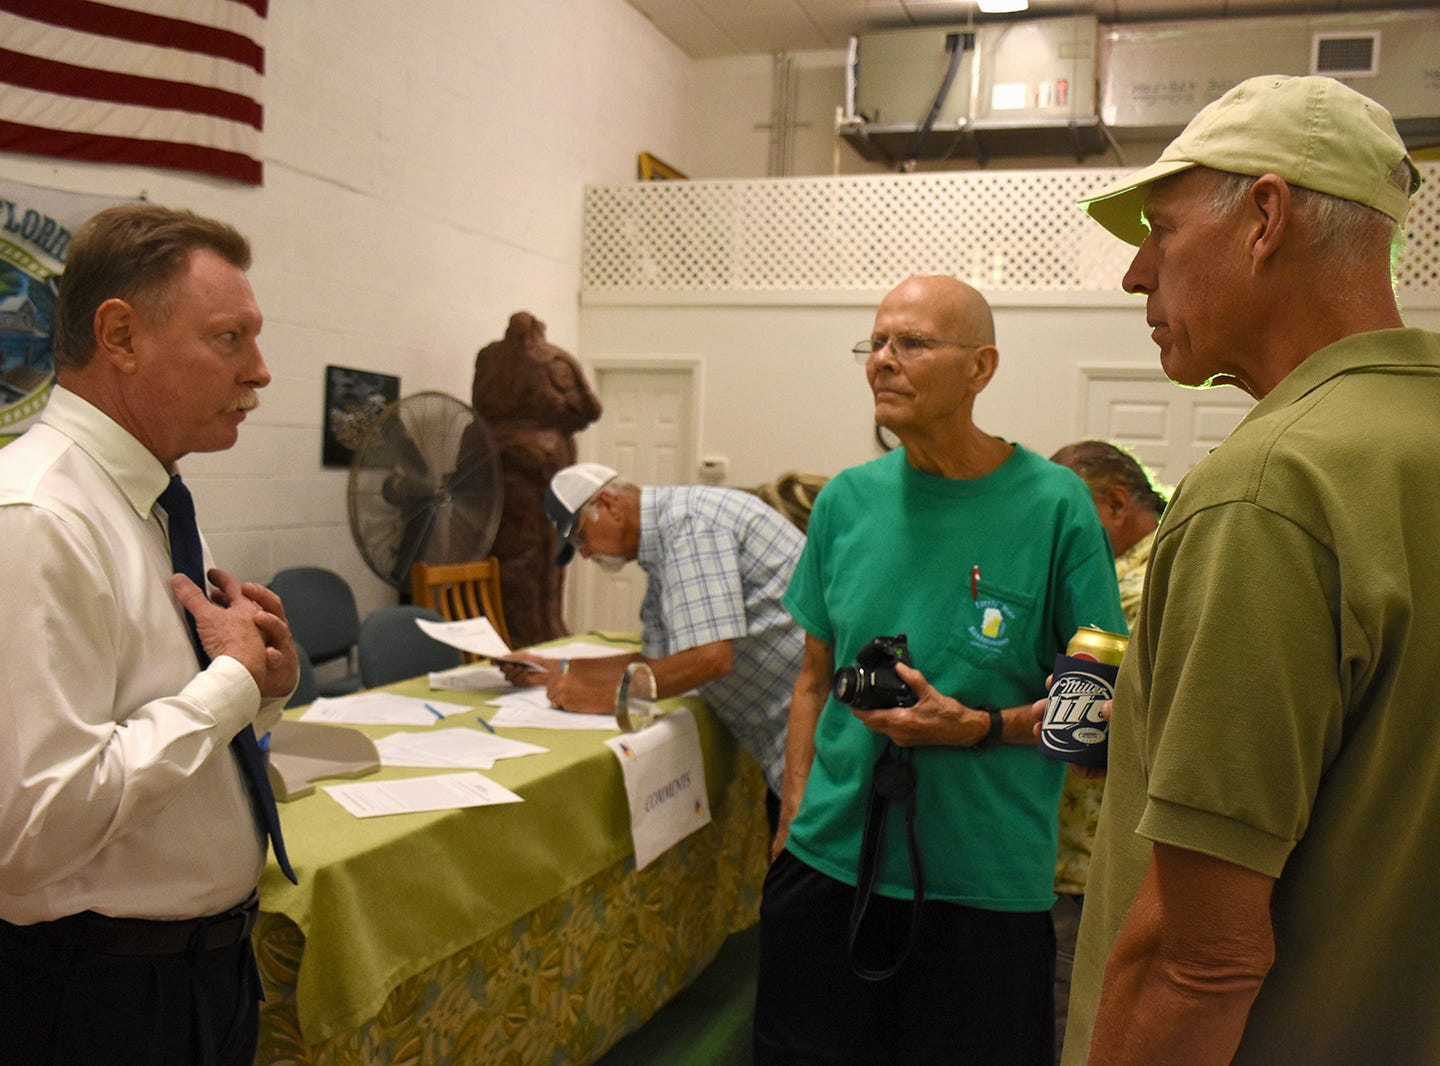 Project manager Andy Miller, left, speaks with residents John Ritchie and Jim Seegers. County planners held a public information meeting at the Goodland Community Center on Thursday evening, to go over plans and solicit resident input on the upcoming work to improve Goodland Drive.